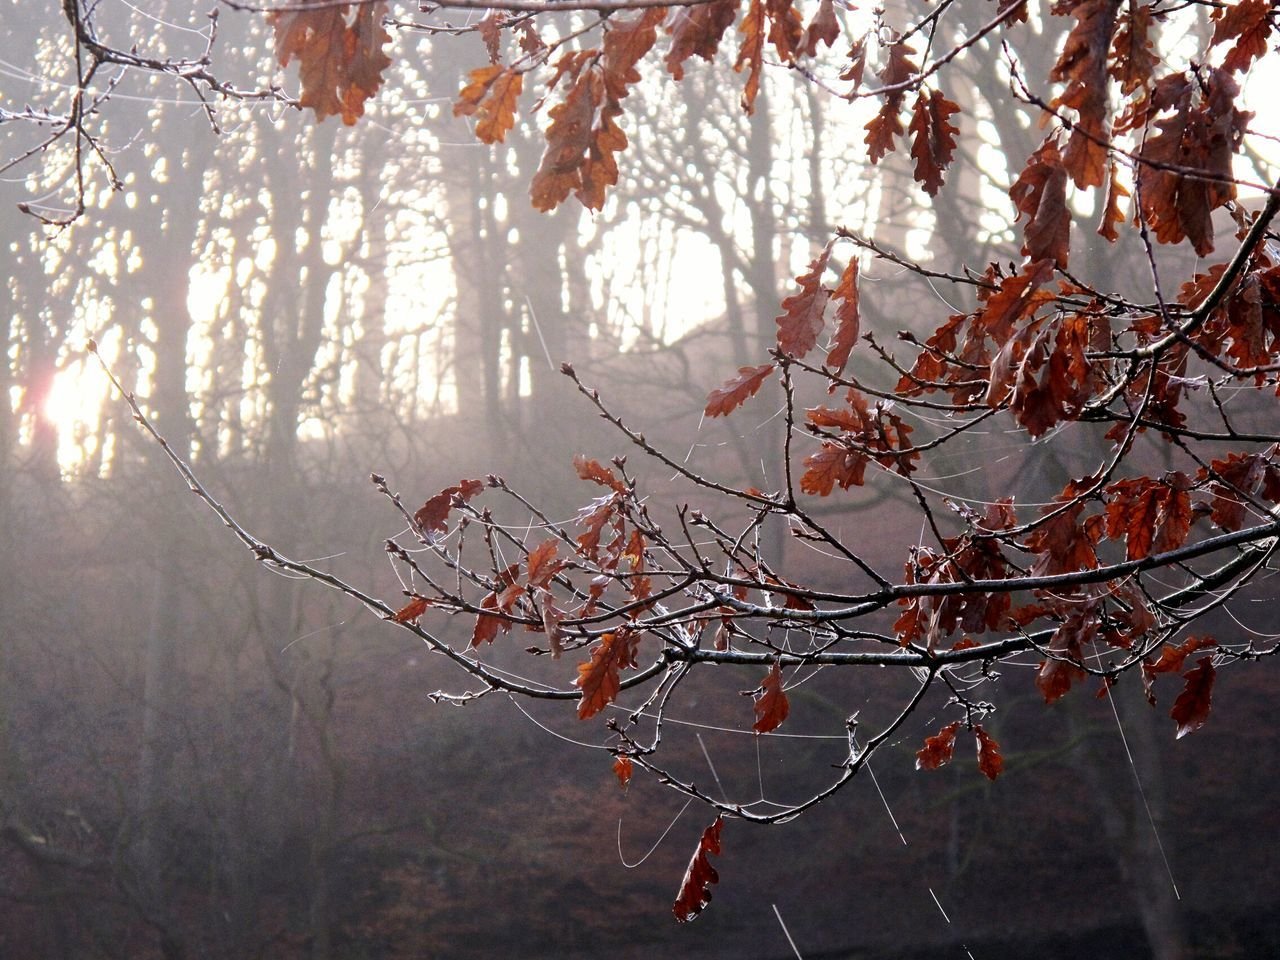 tree, branch, nature, beauty in nature, forest, no people, day, outdoors, autumn, winter, tranquility, twig, scenics, tranquil scene, growth, fog, leaf, sunlight, cold temperature, fragility, sky, close-up, freshness